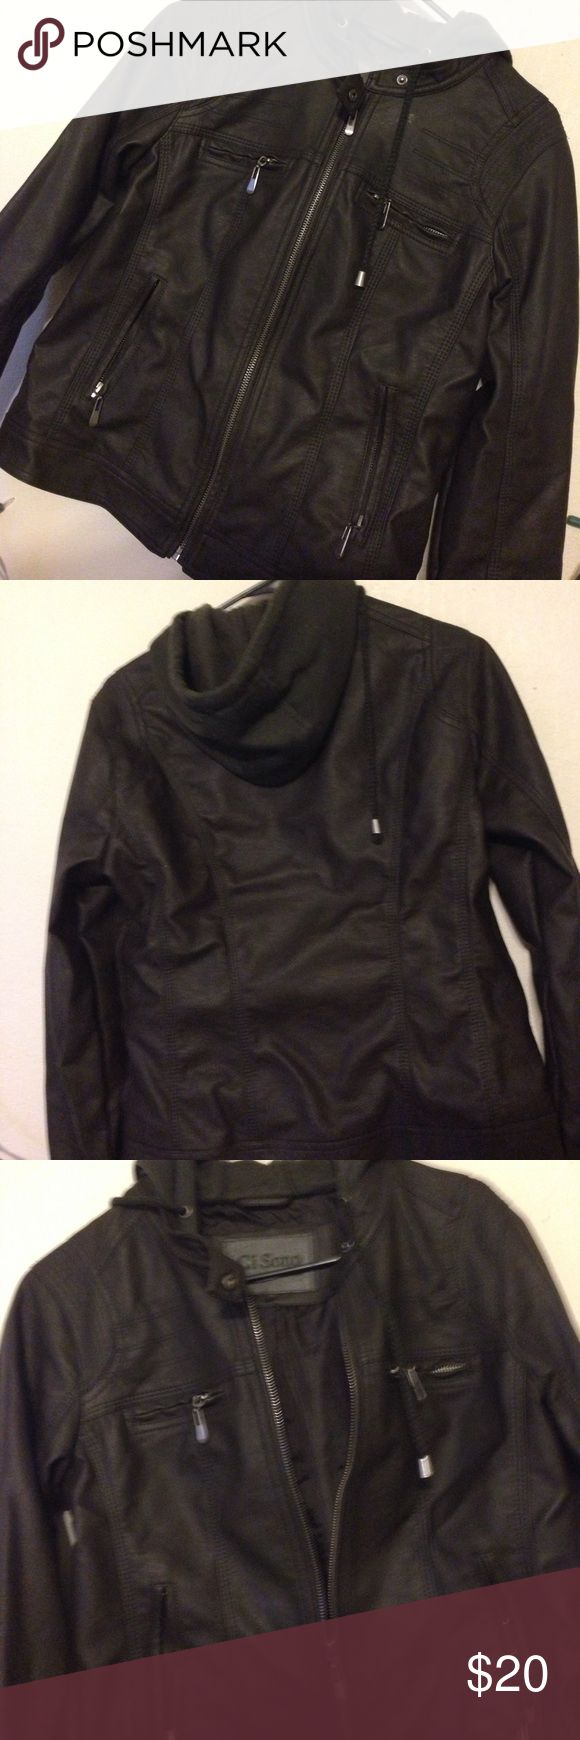 Beautiful Faux Leather Jacket Brown Faux leather jacket with a green hood, NWOT never worn. beautiful just never got around to wearing it. Size medium, fits like a small Jackets & Coats